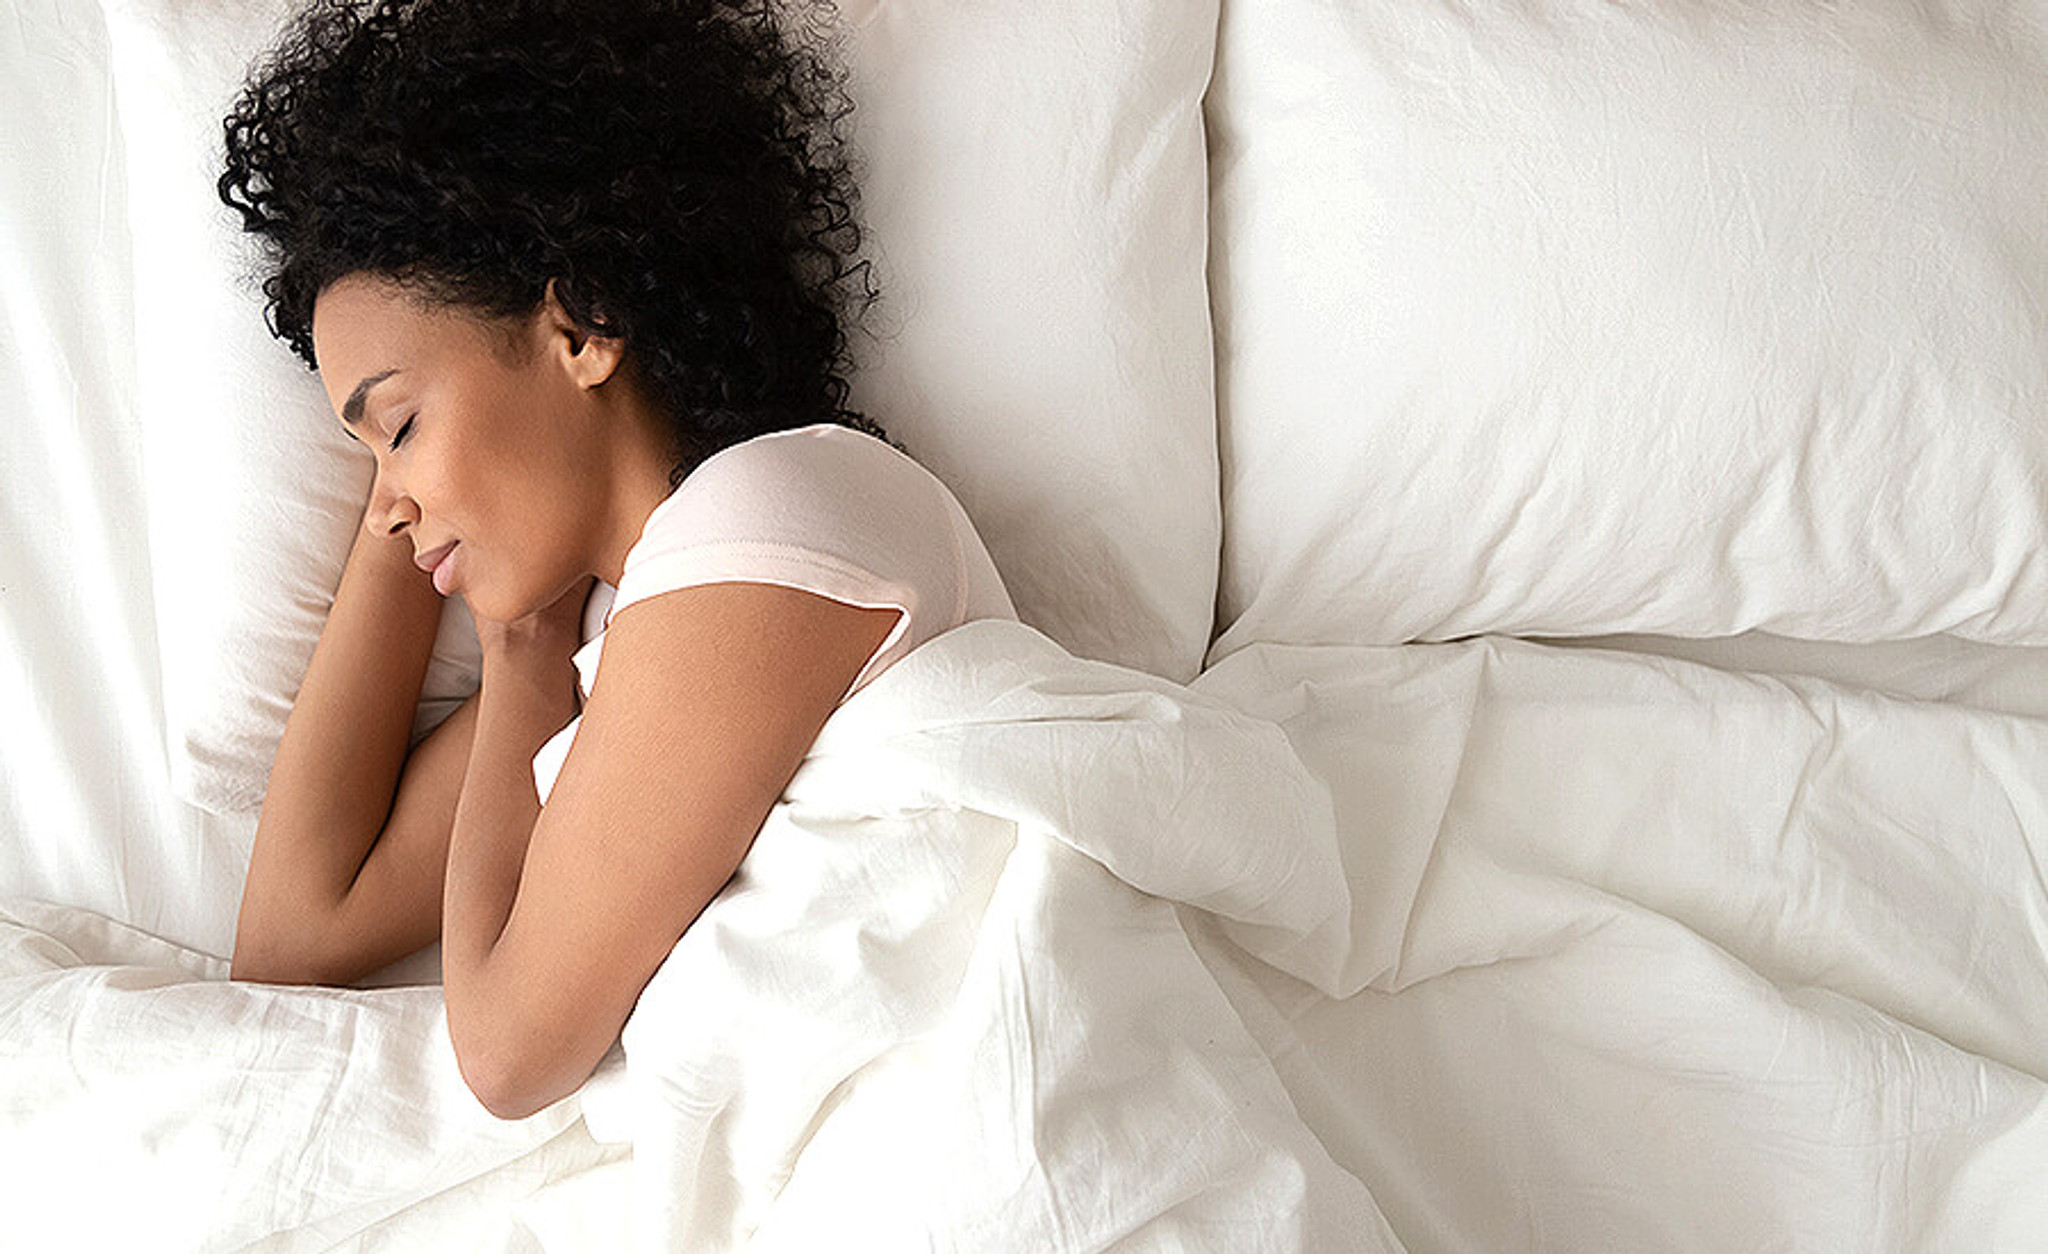 We think everyone should sleep in luxury linens, here's why.